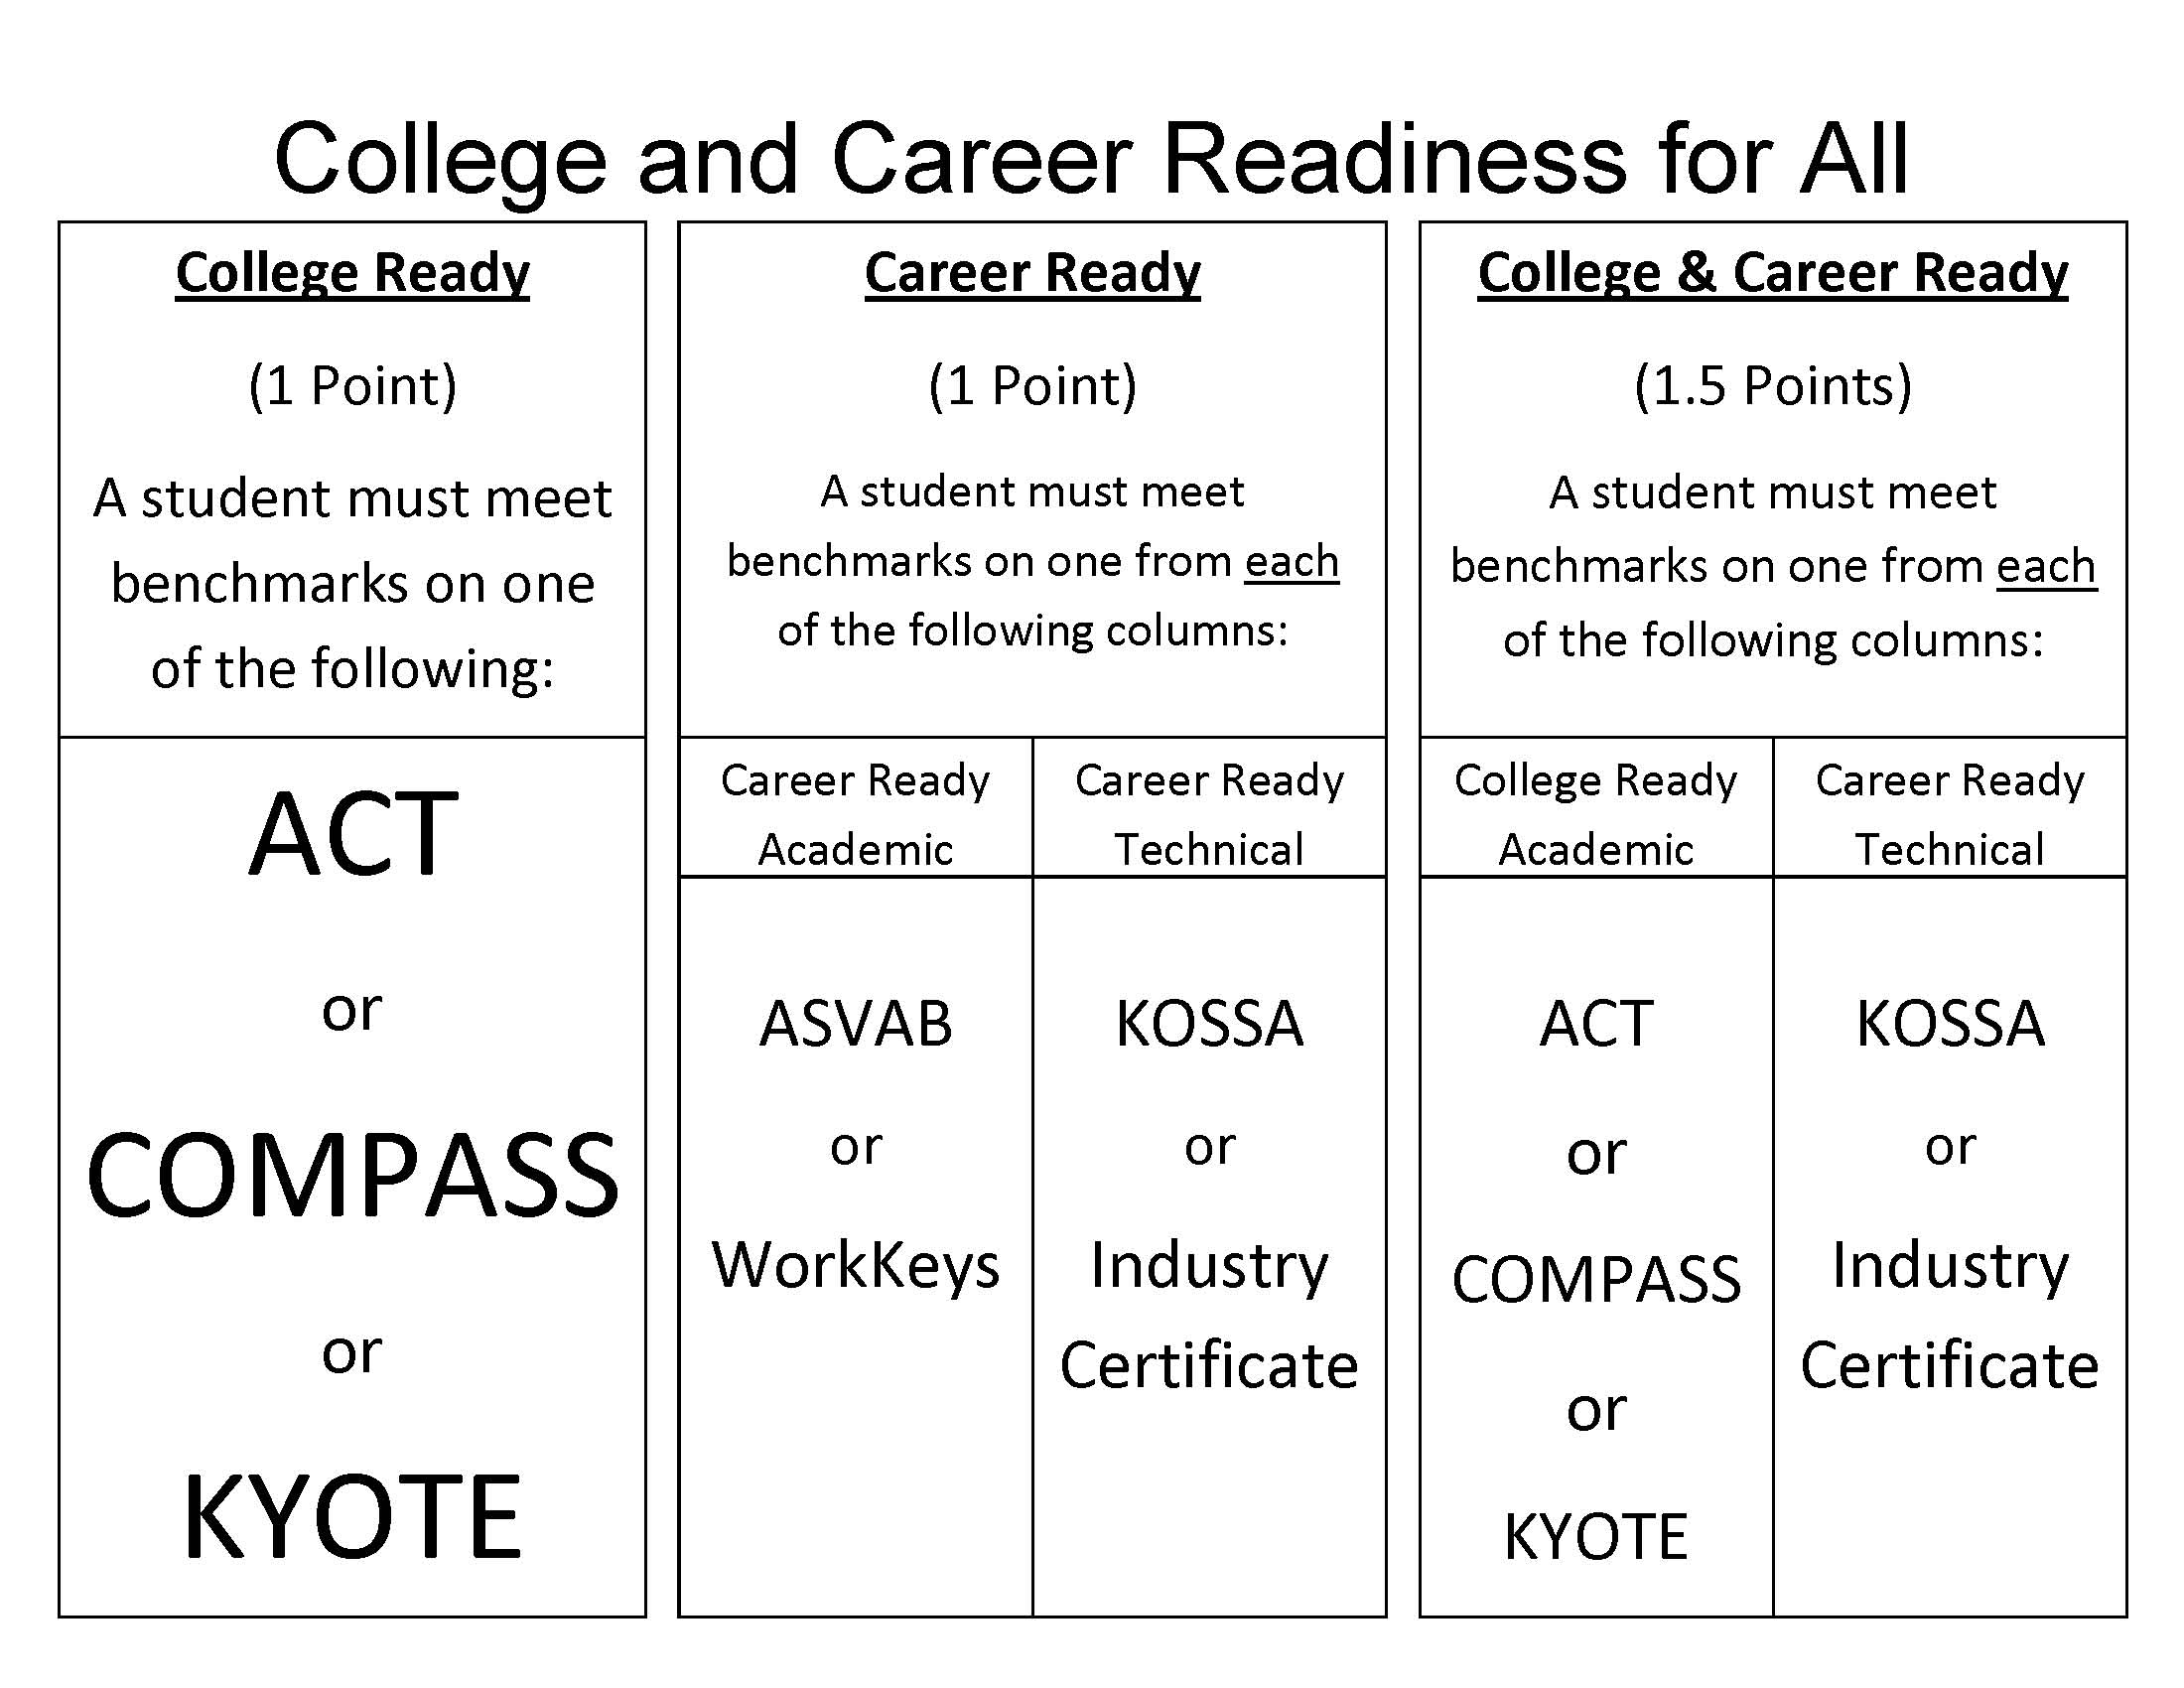 College & Career Readiness for All